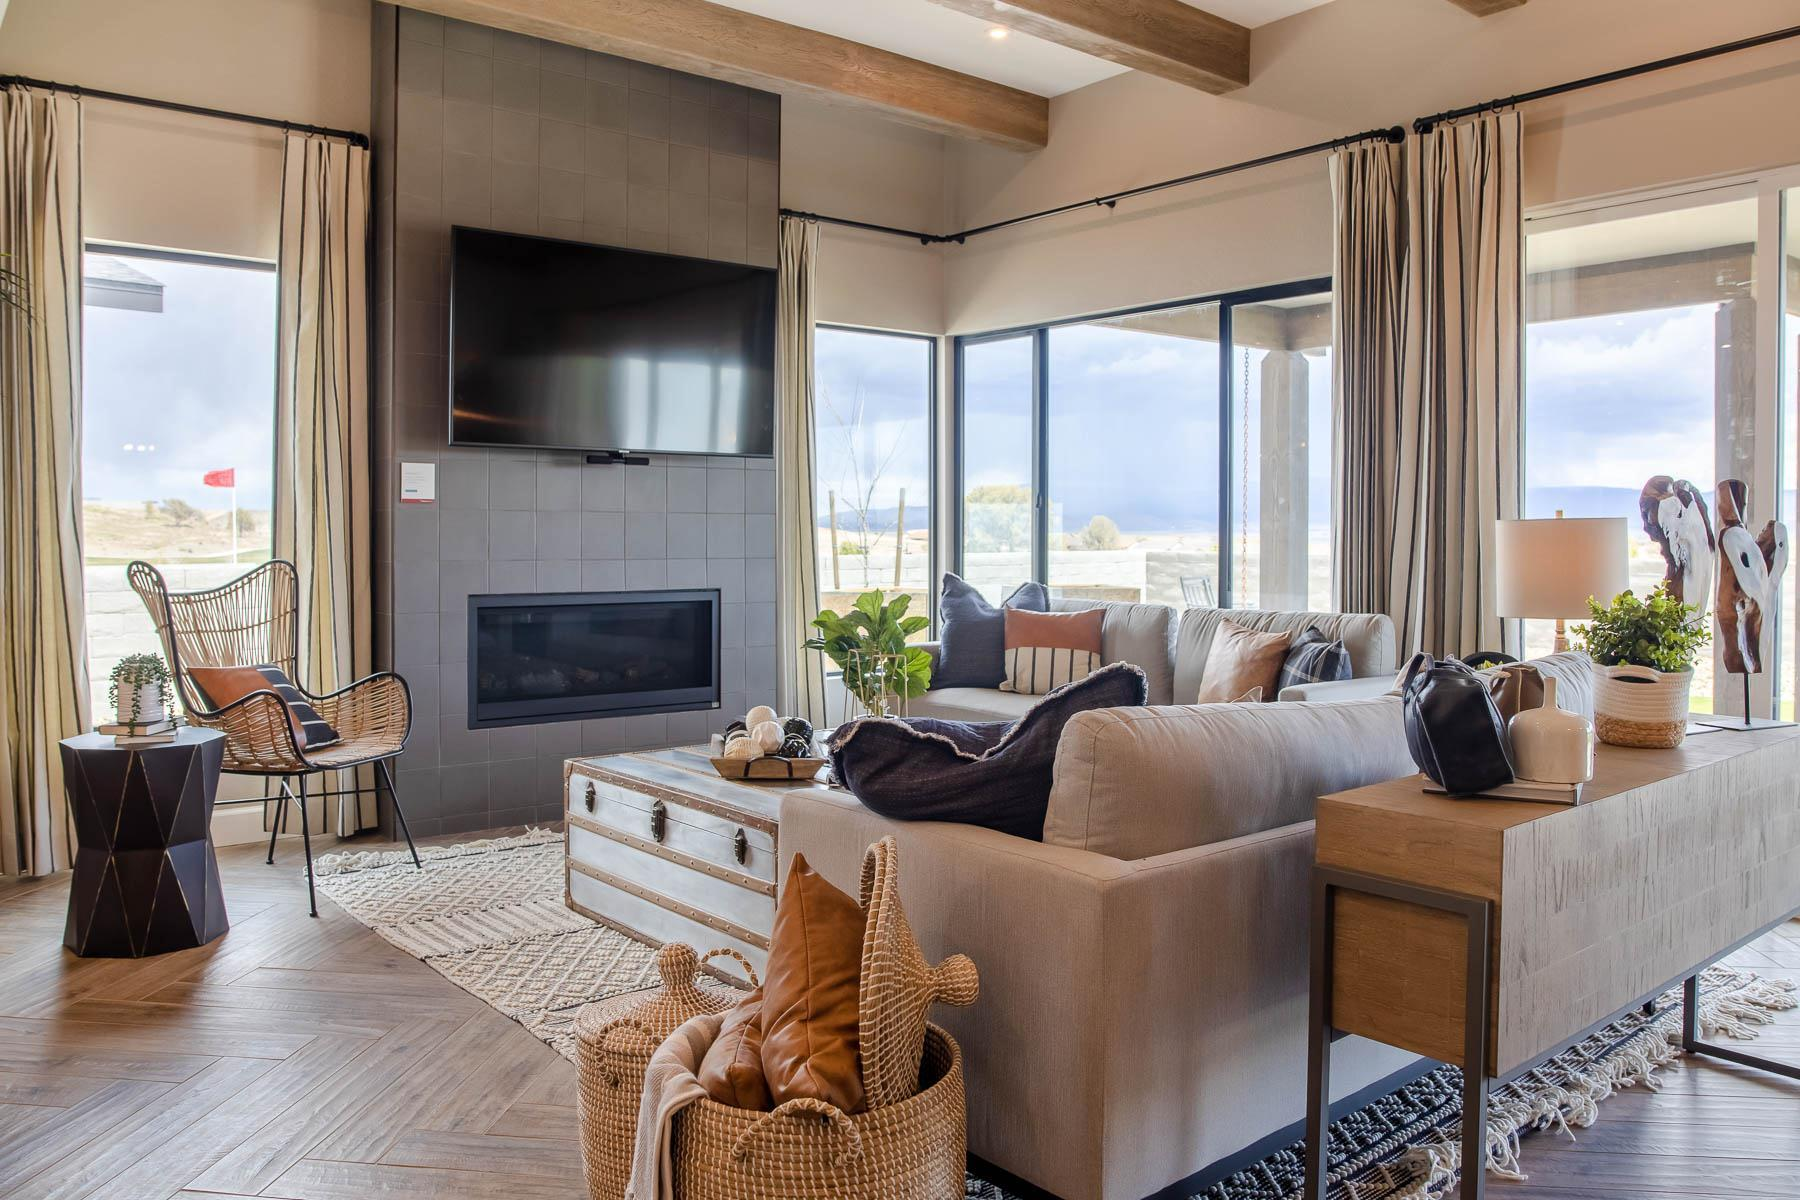 Living Area featured in the J604 By Mandalay Homes in Prescott, AZ